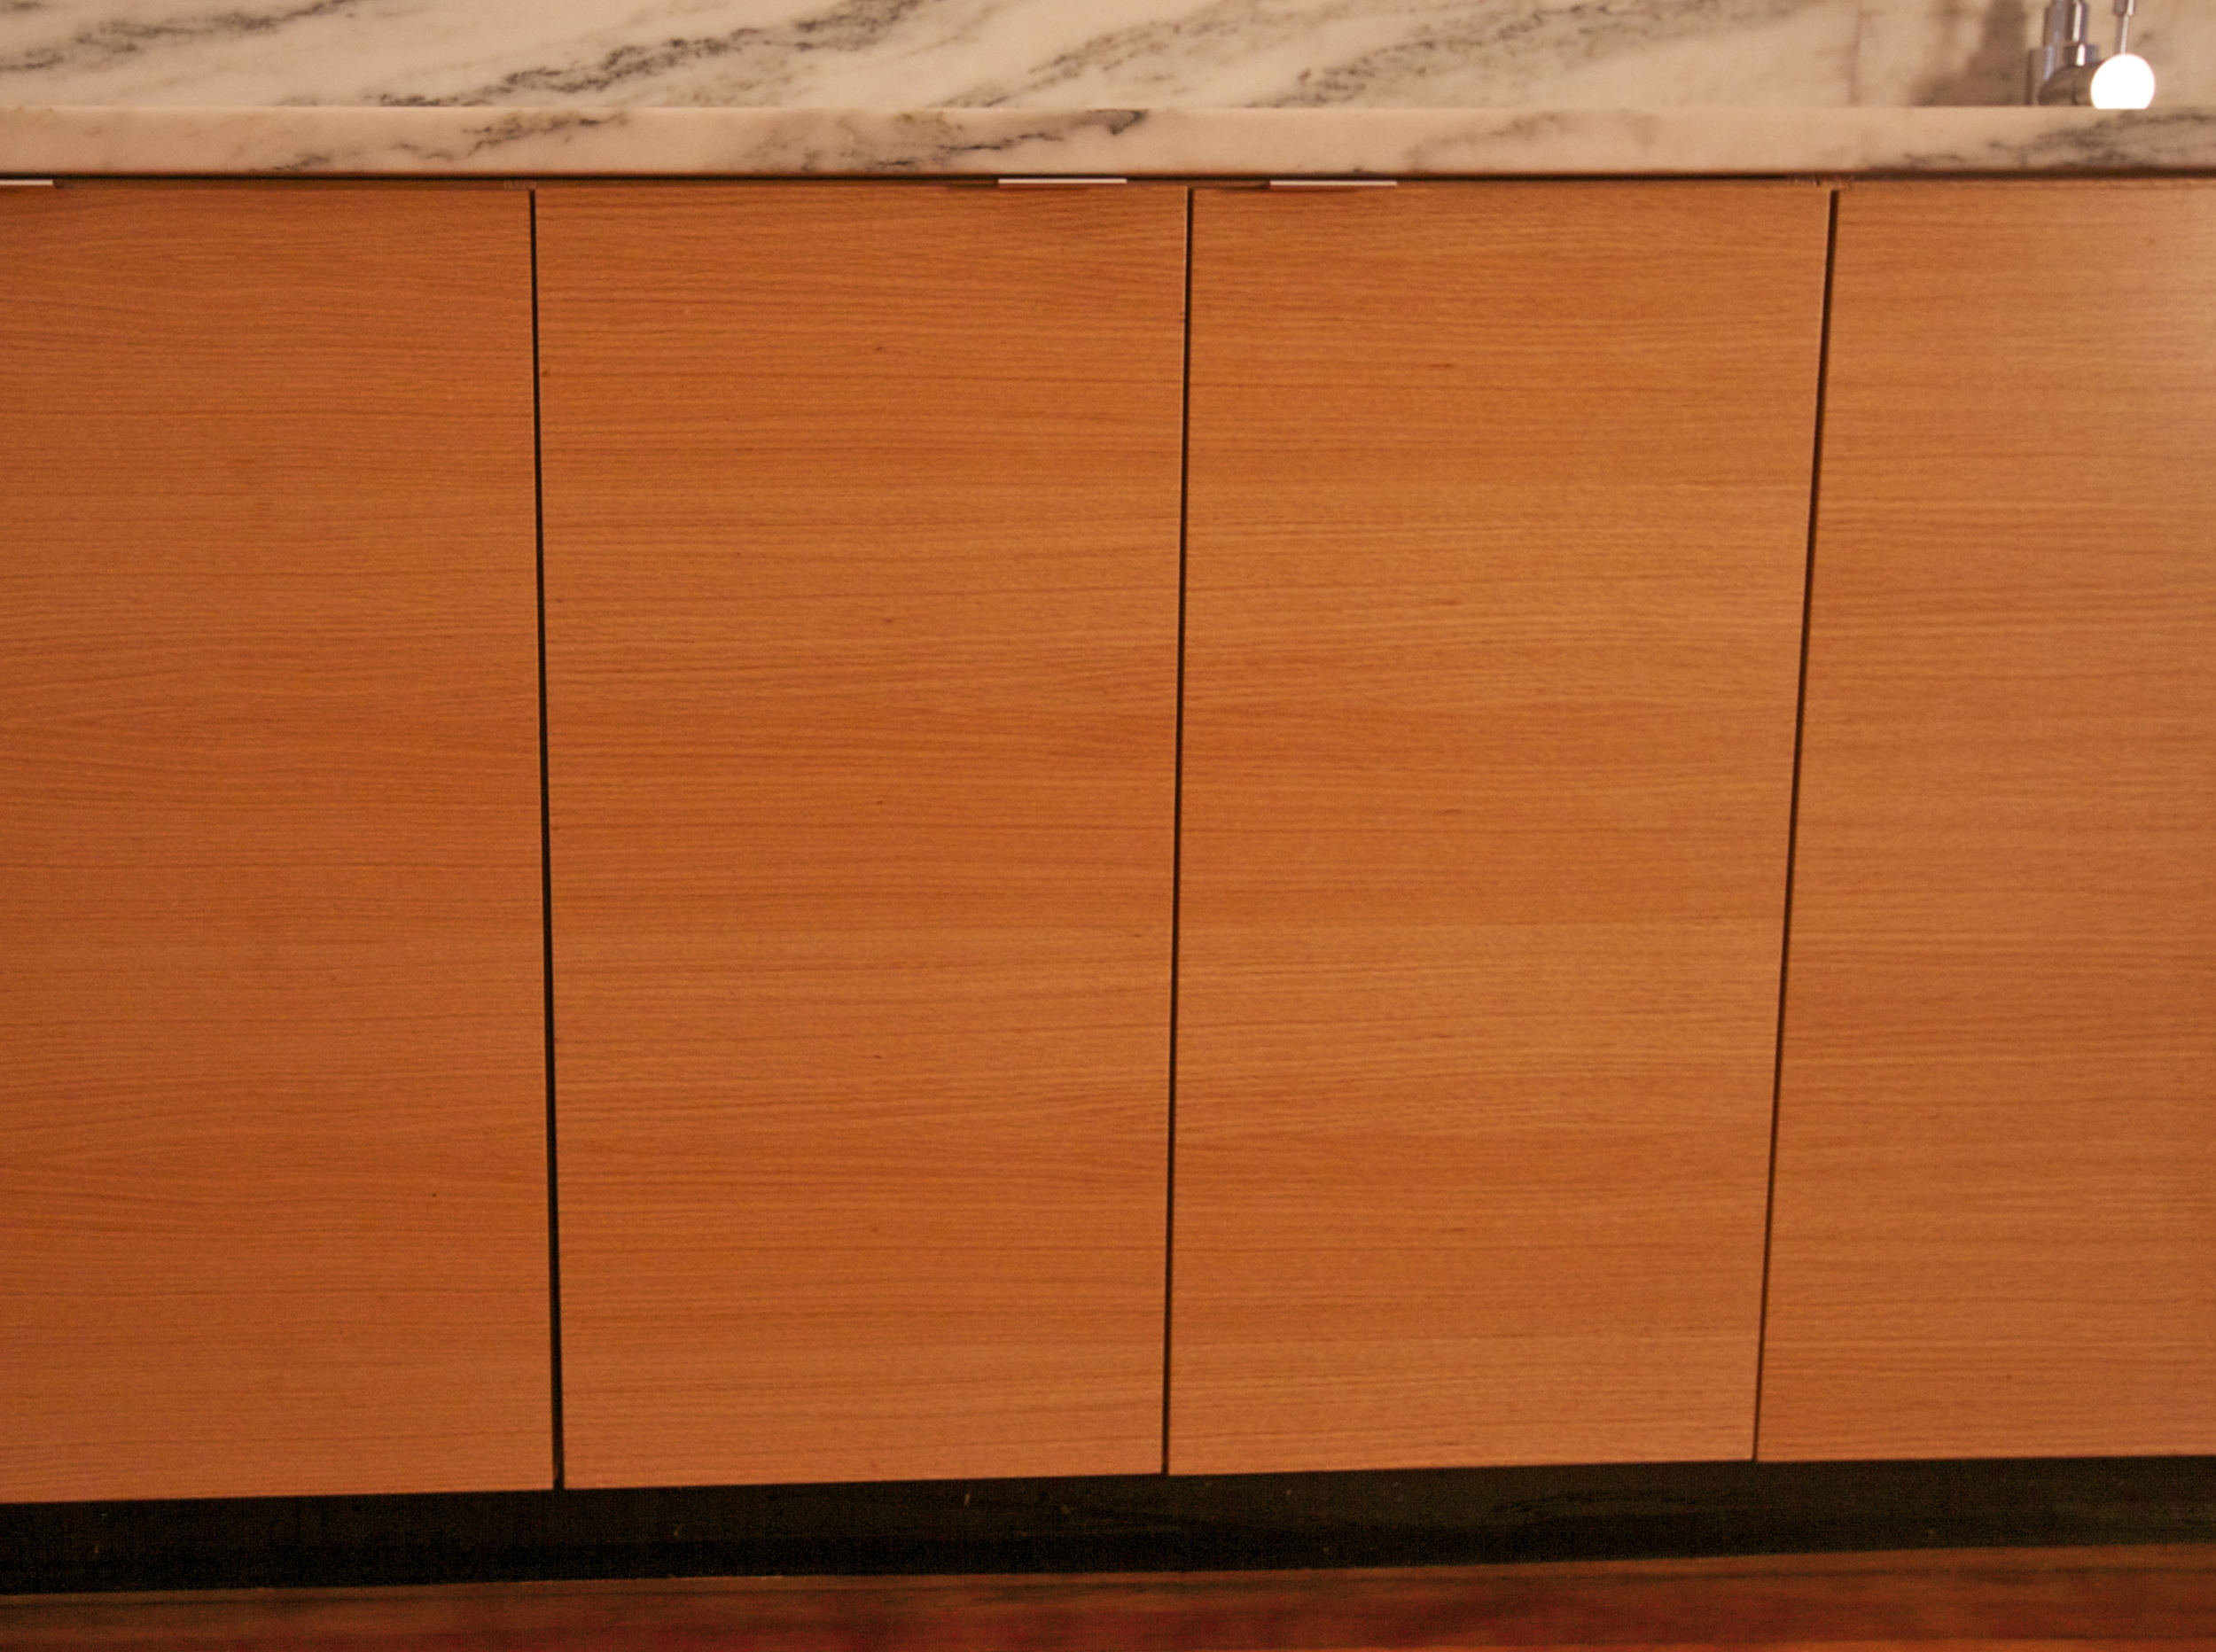 rift-sawn oak cabinets with marble counter